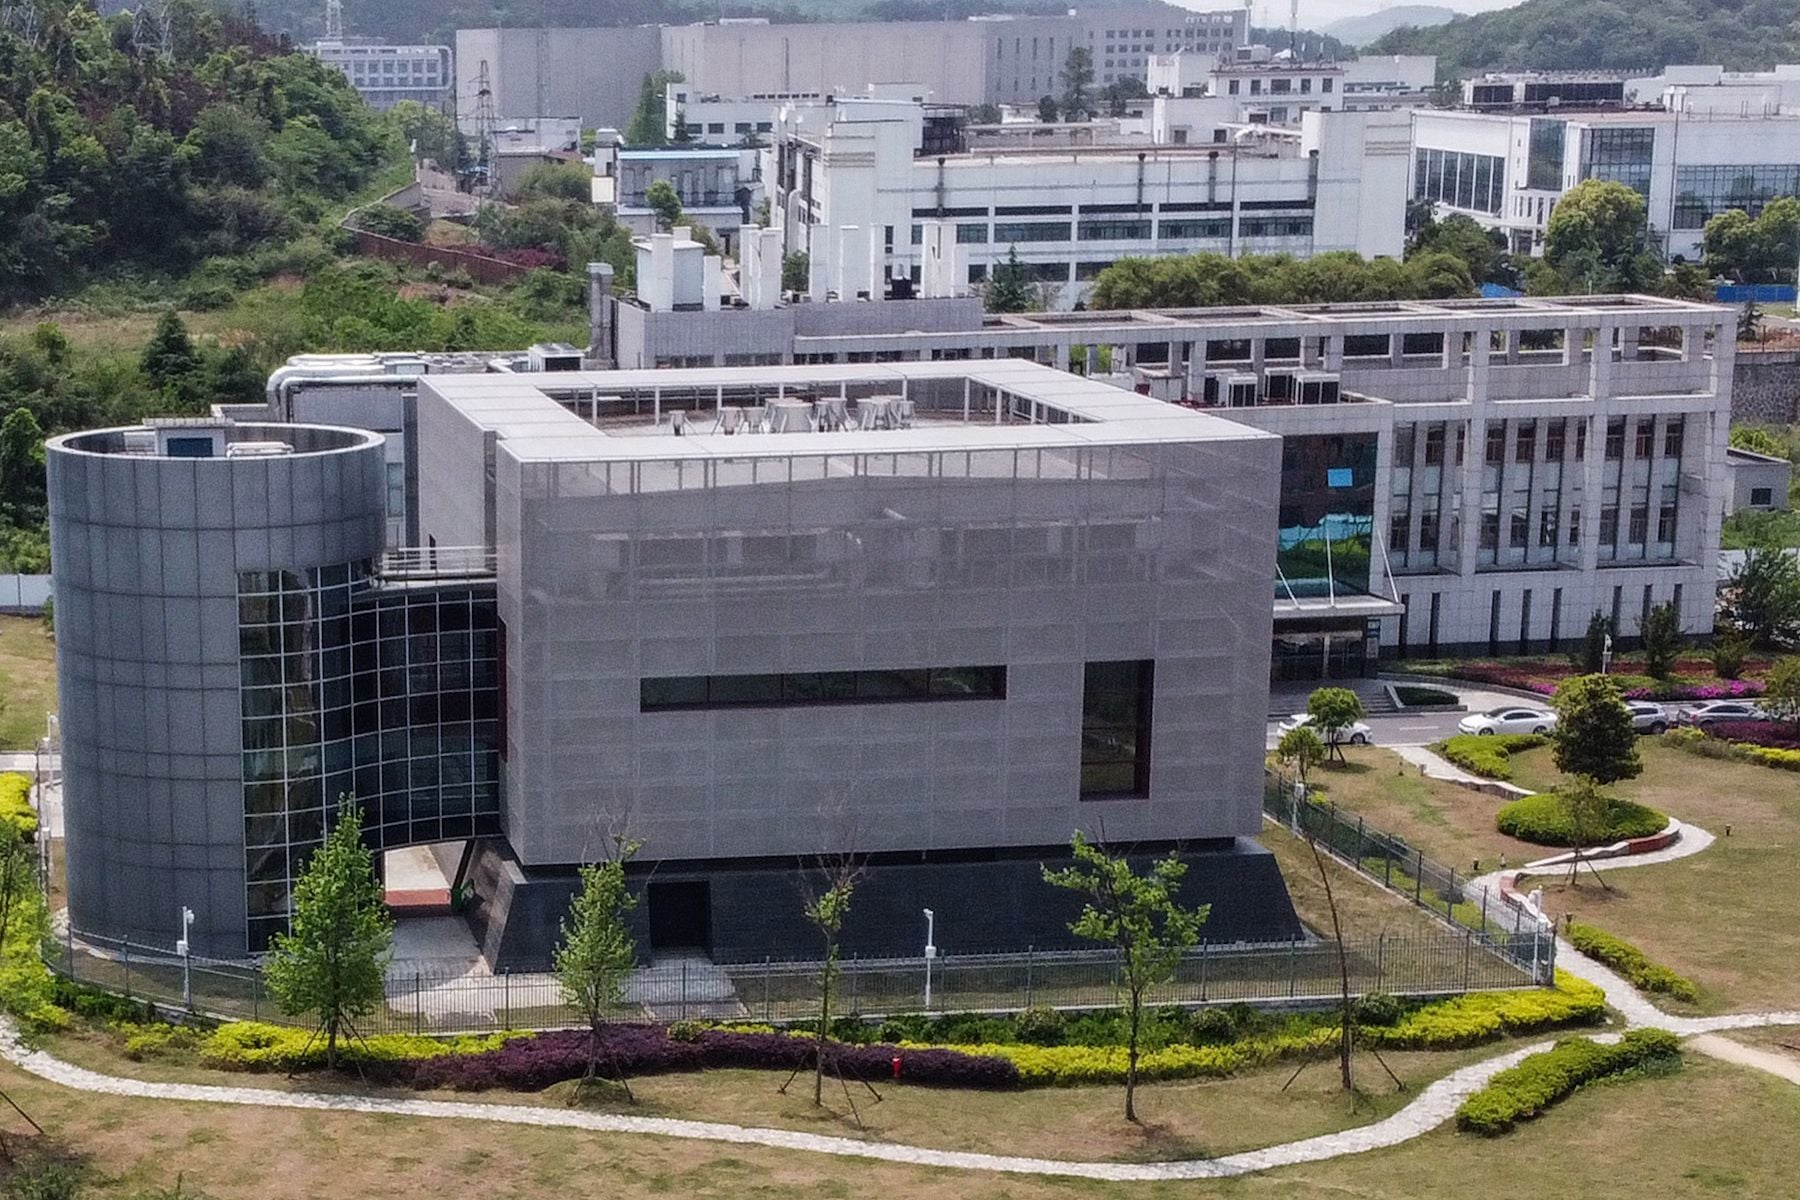 An aerial view shows the P4 laboratory at the Wuhan Institute of Virology in Wuhan in China's central Hubei province on April 17, 2020. - The P4 epidemiological laboratory was built in co-operation with French bio-industrial firm Institut Merieux and the Chinese Academy of Sciences. The facility is among a handful of labs around the world cleared to handle Class 4 pathogens (P4) - dangerous viruses that pose a high risk of person-to-person transmission. (Photo by Hector RETAMAL / AFP) — AFP or licensors